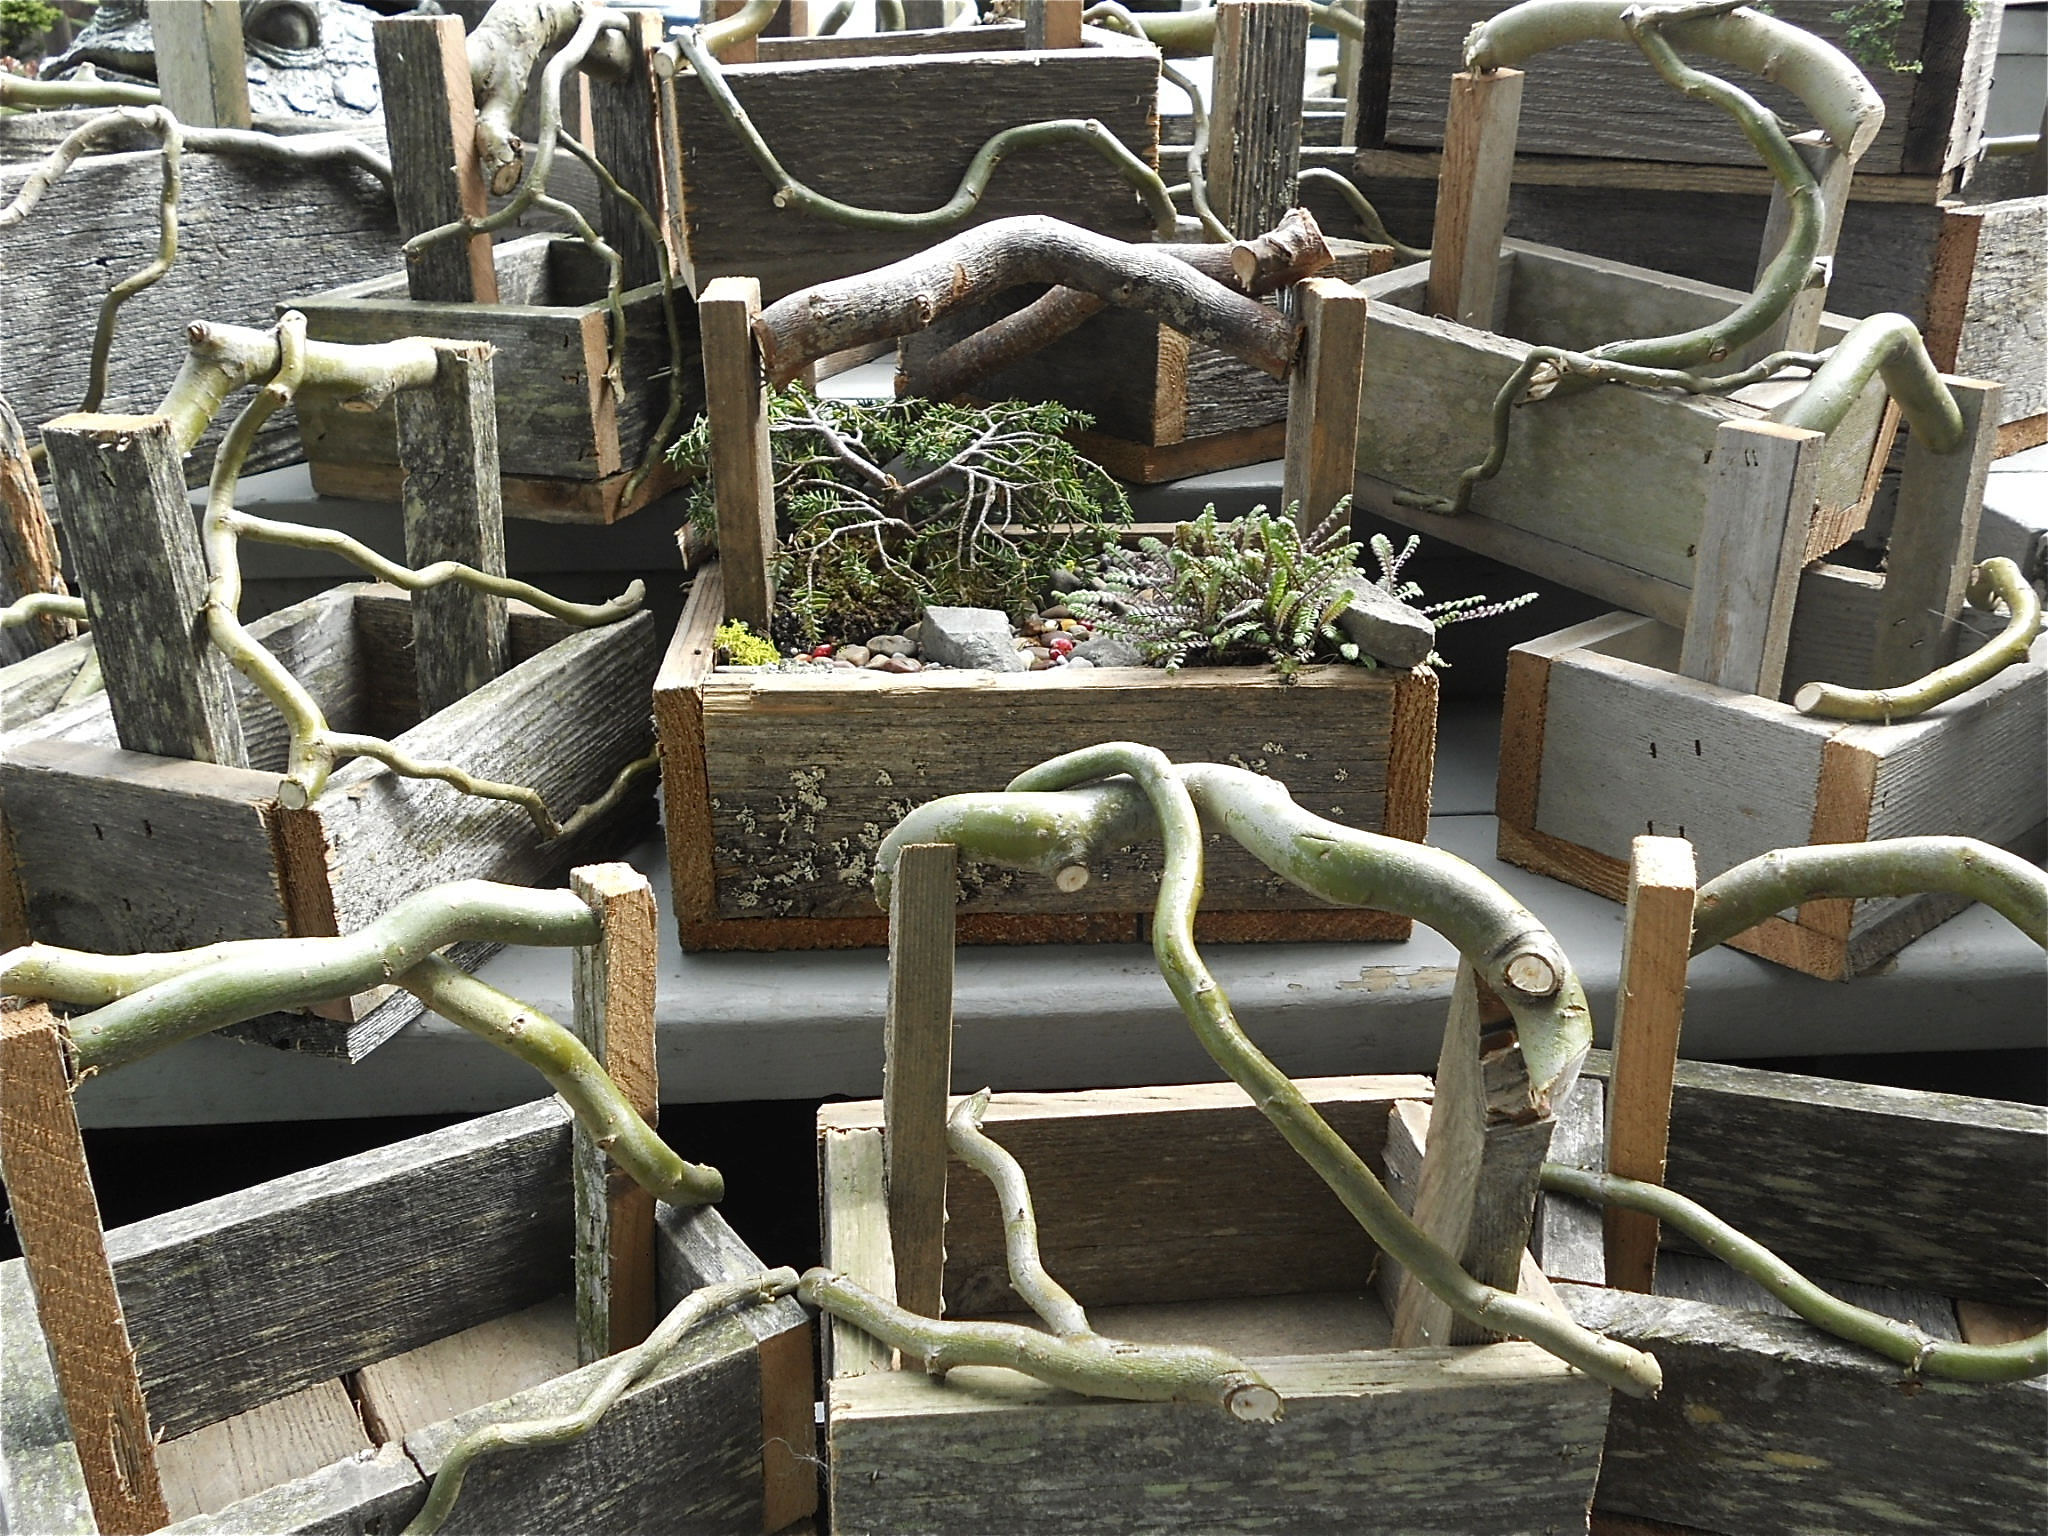 Handmade Twig Trugs from Whitbey Island